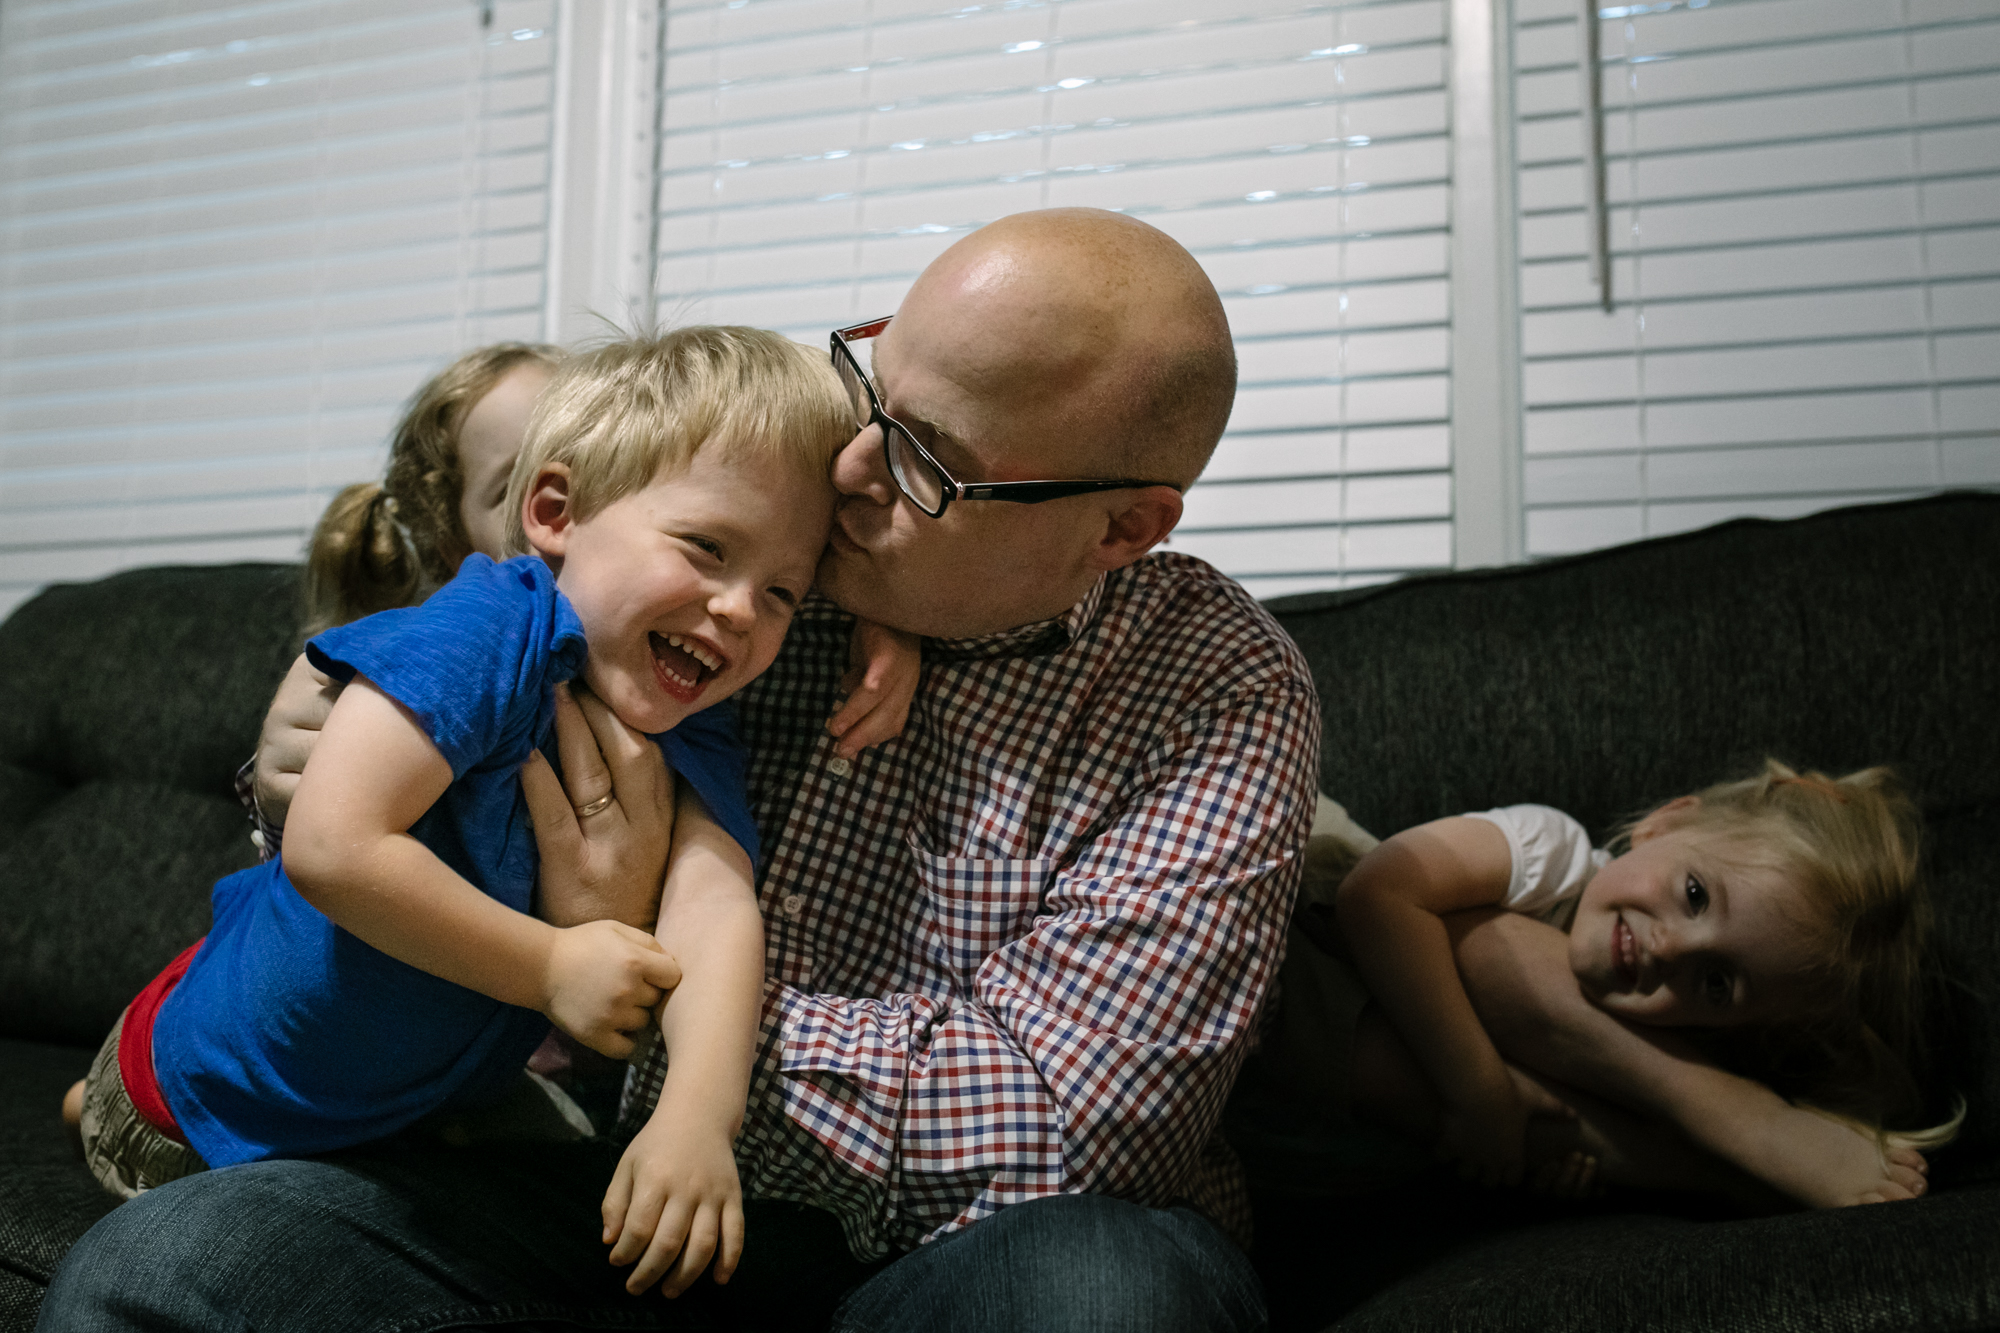 Dad kisses son who is smiling and girl in background holds onto another kid's legs